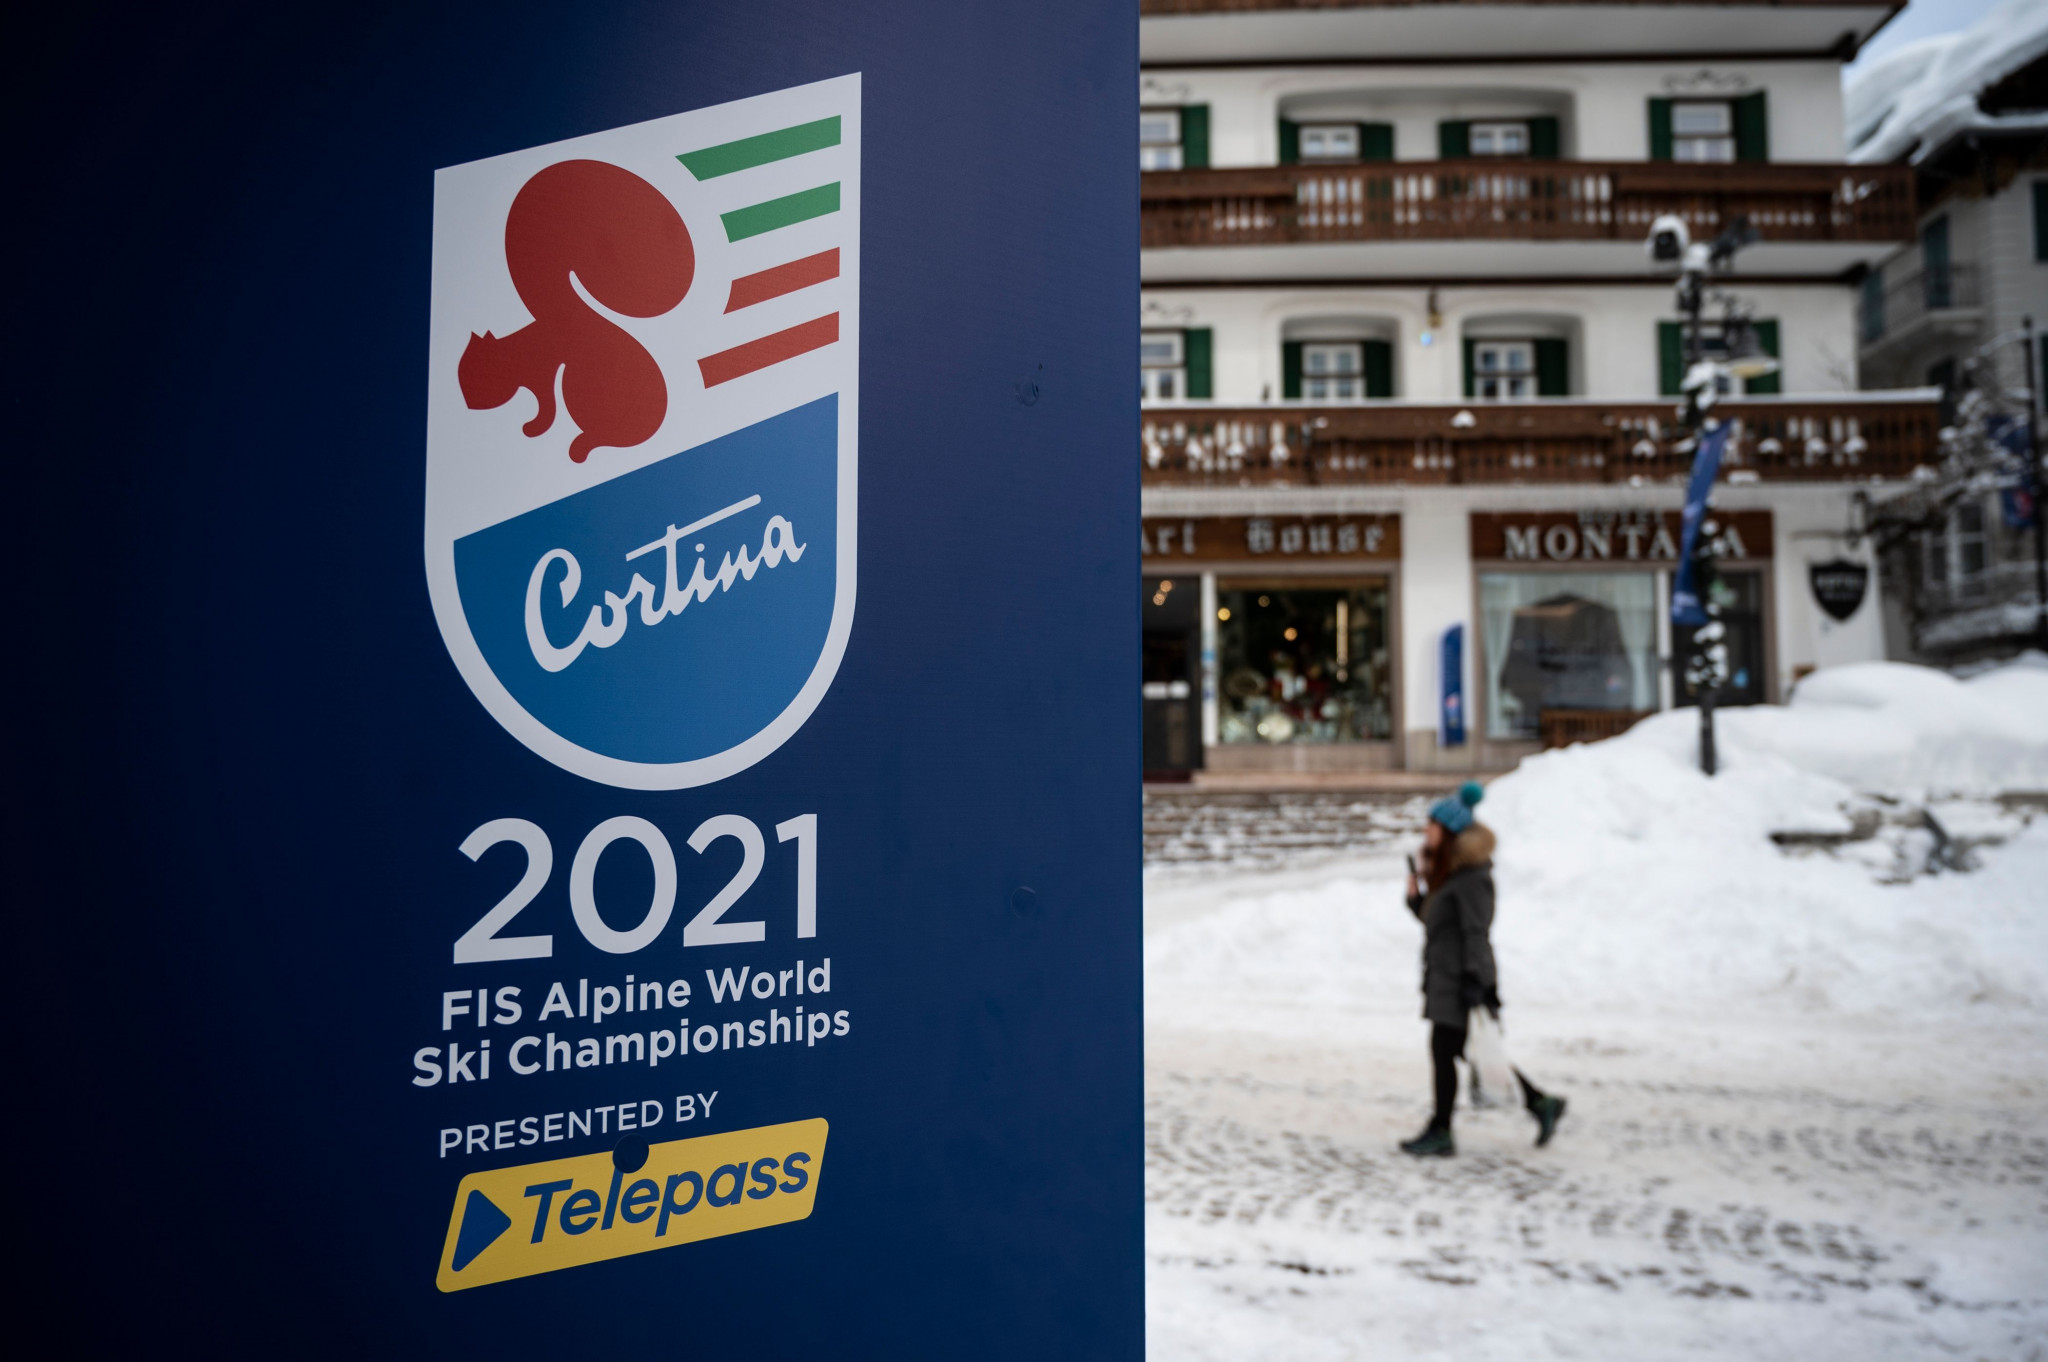 Courchevel-Méribel 2023 organisers are ready to be in the spotlight after the conclusion of Cortina d'Ampezzo 2021 ©Getty Images